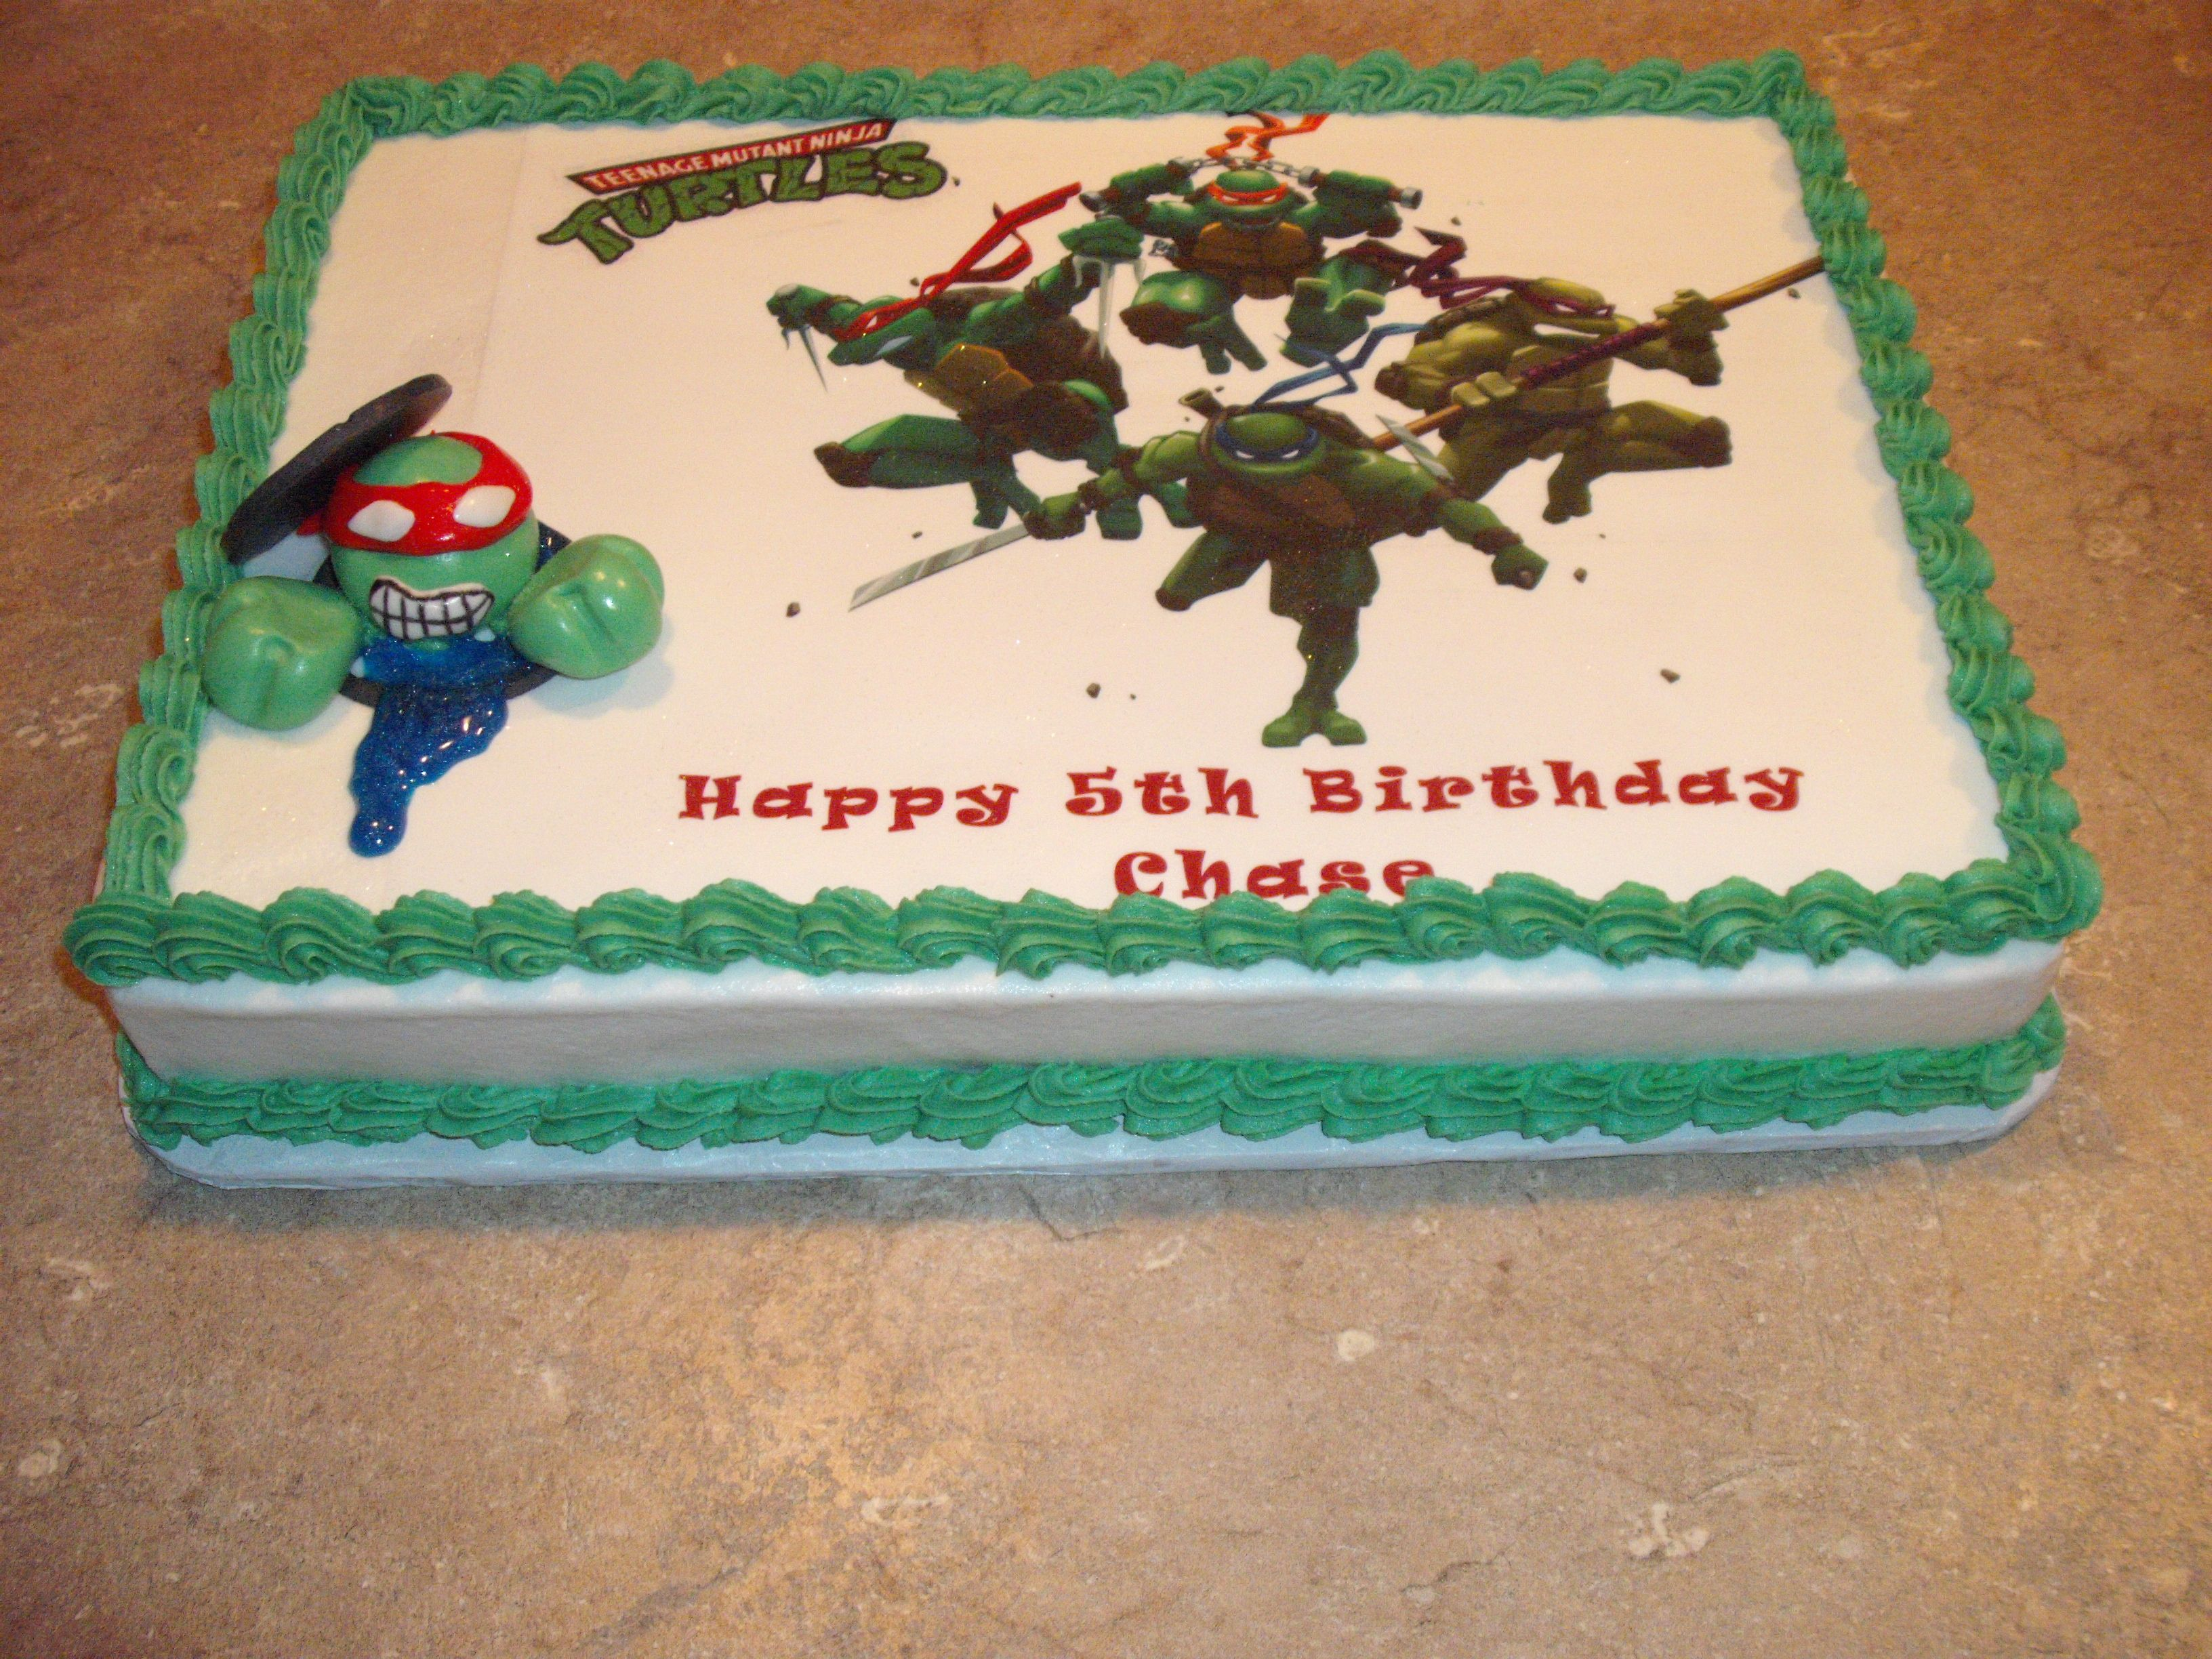 Teenage Mutant Ninja Turtles Cake with Raphael coming out of the